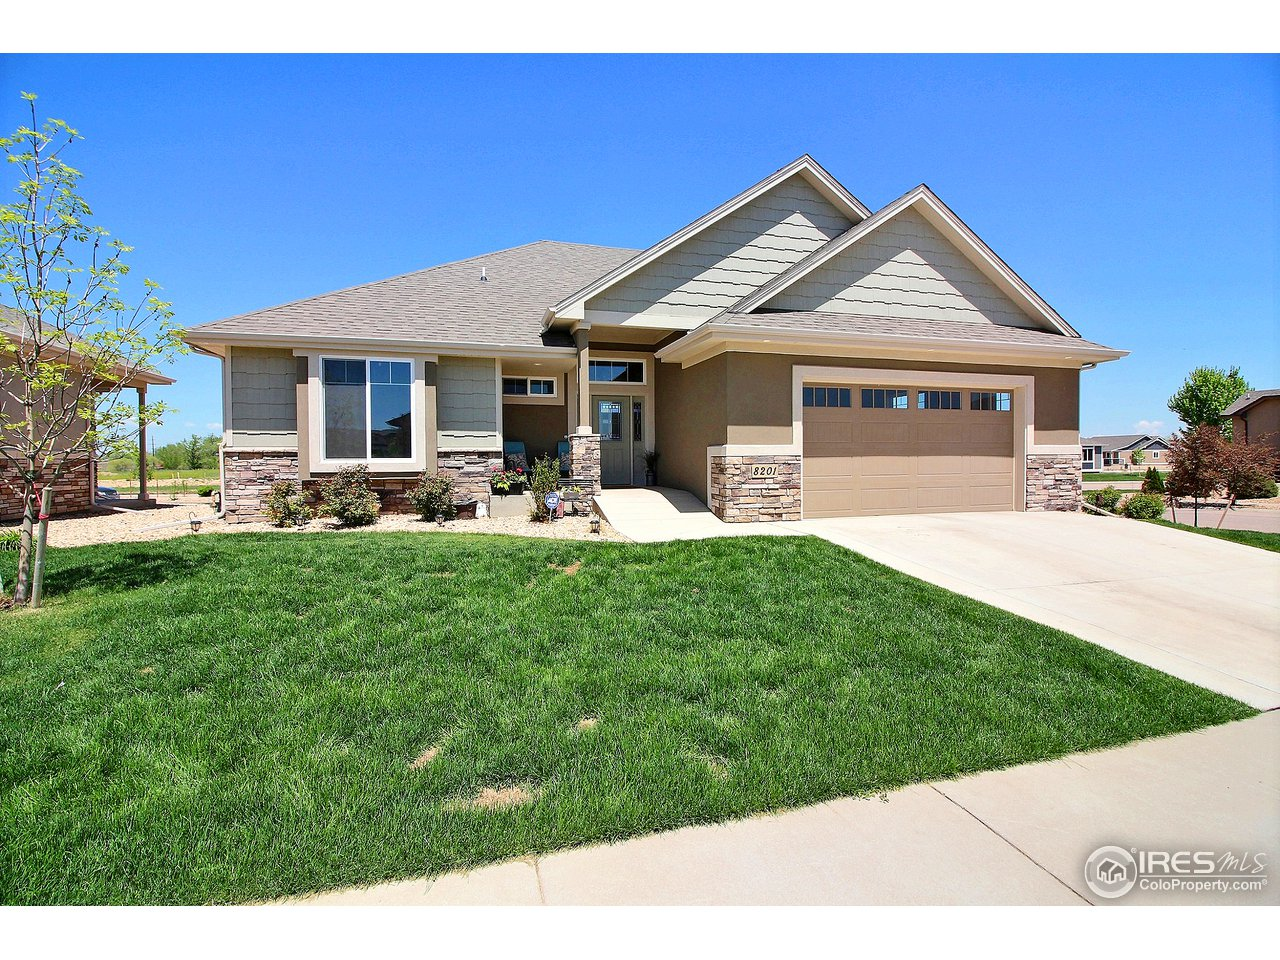 Amazing floor plan & finishes on this custom built built zero step entry patio home. Not ADA compliant , but pretty close! Gorgeous finishes, granite counter tops, large garage, South facing, all stucco/stone exterior. Amazing kitchen, S.S.appliances, large island & huge pantry! Finished basement w/ 2 large bedrooms, wet bar & plenty of storage. Light, bright, open floor plan w/ panoramic windows. Yard care/snow removal/trash, ext H20 included in HOA. Across the street from Poudre Trail.